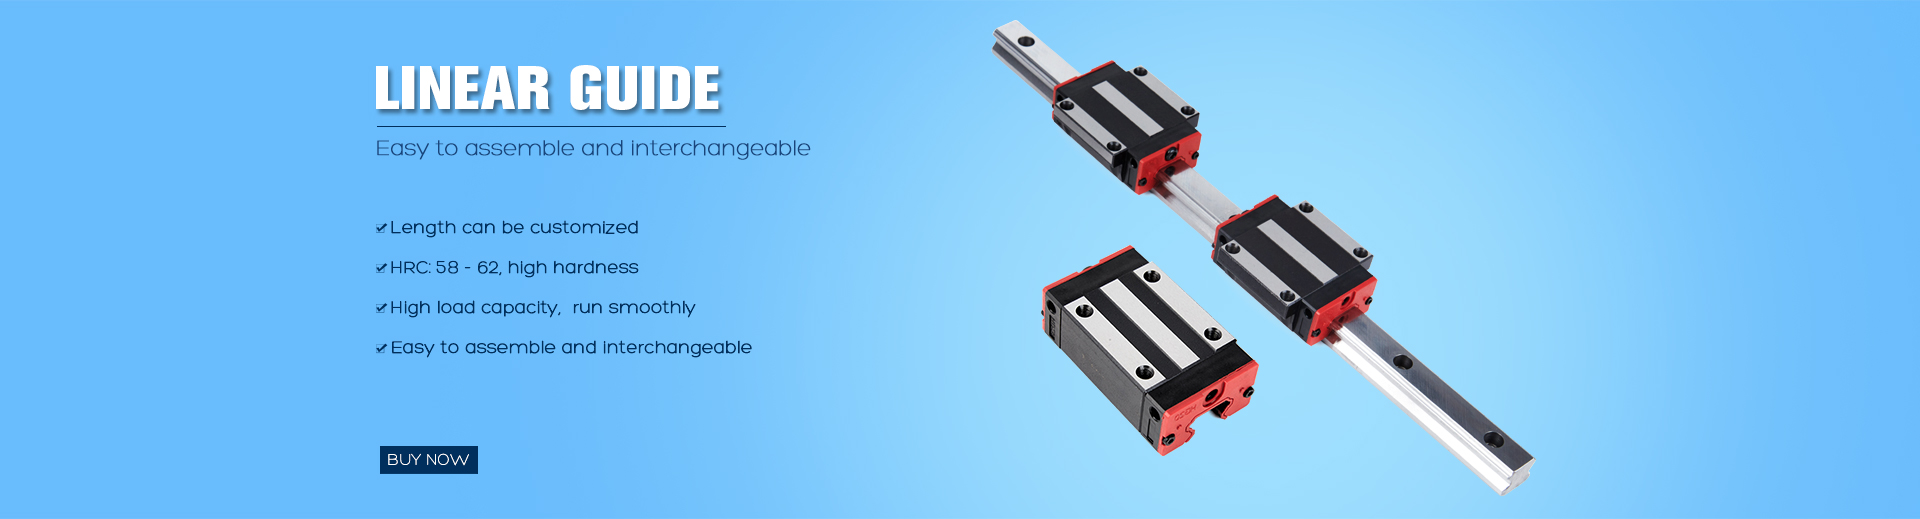 Square Linear Guide